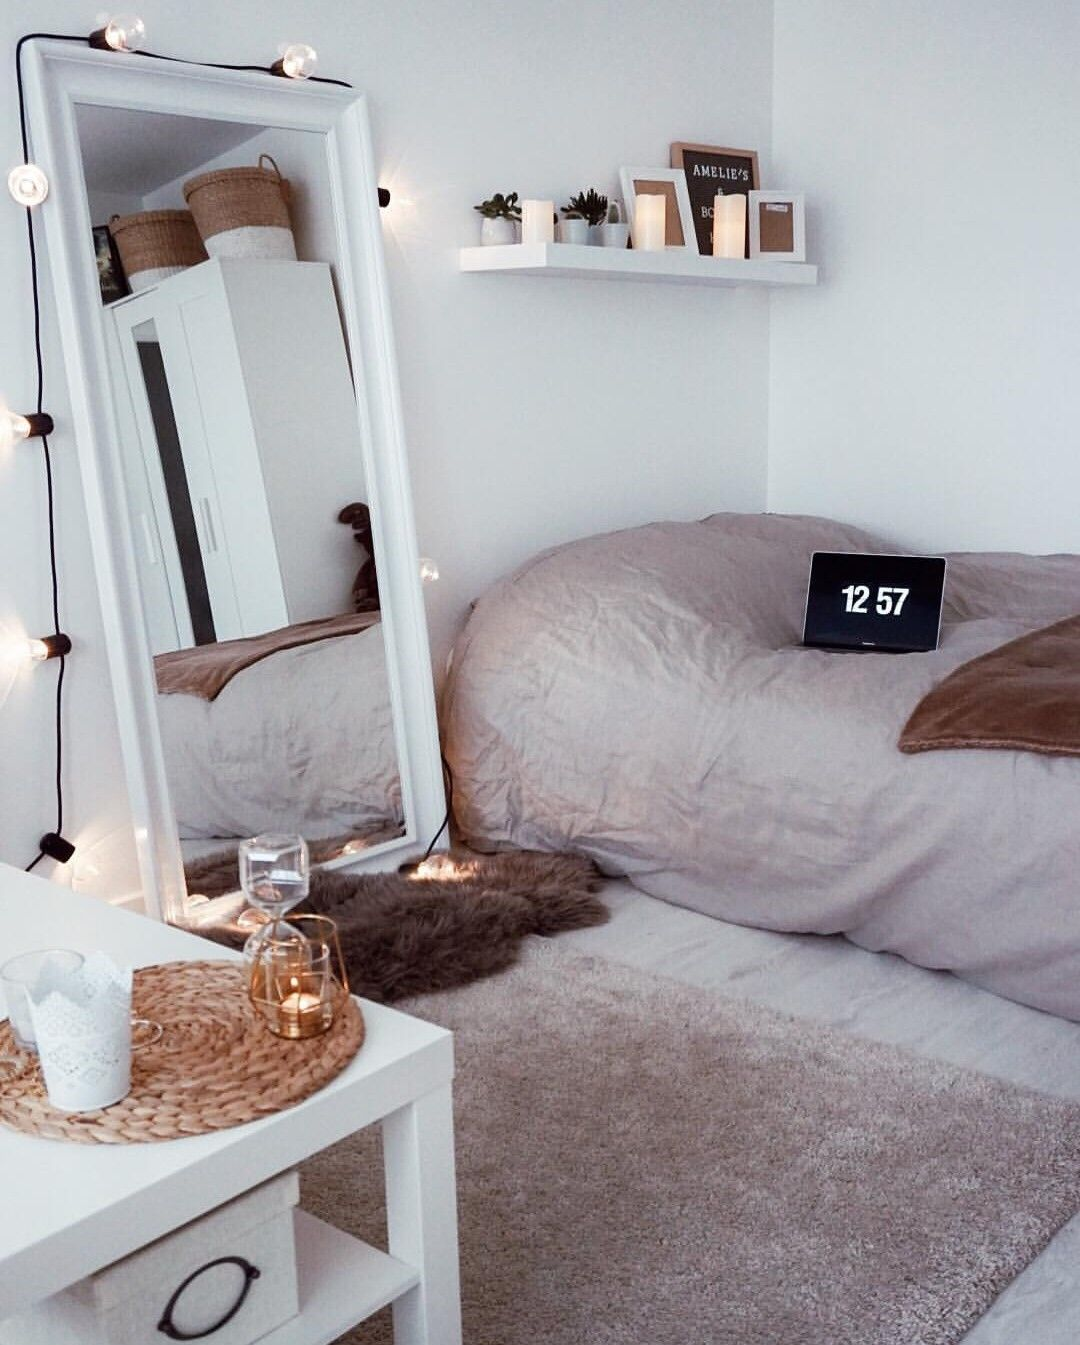 Pinterest Trinitie99 Dorm Room Ideas For Girls Minimalist Cozy Neutrals Bedroom Decor Bedroom Design Room Inspiration